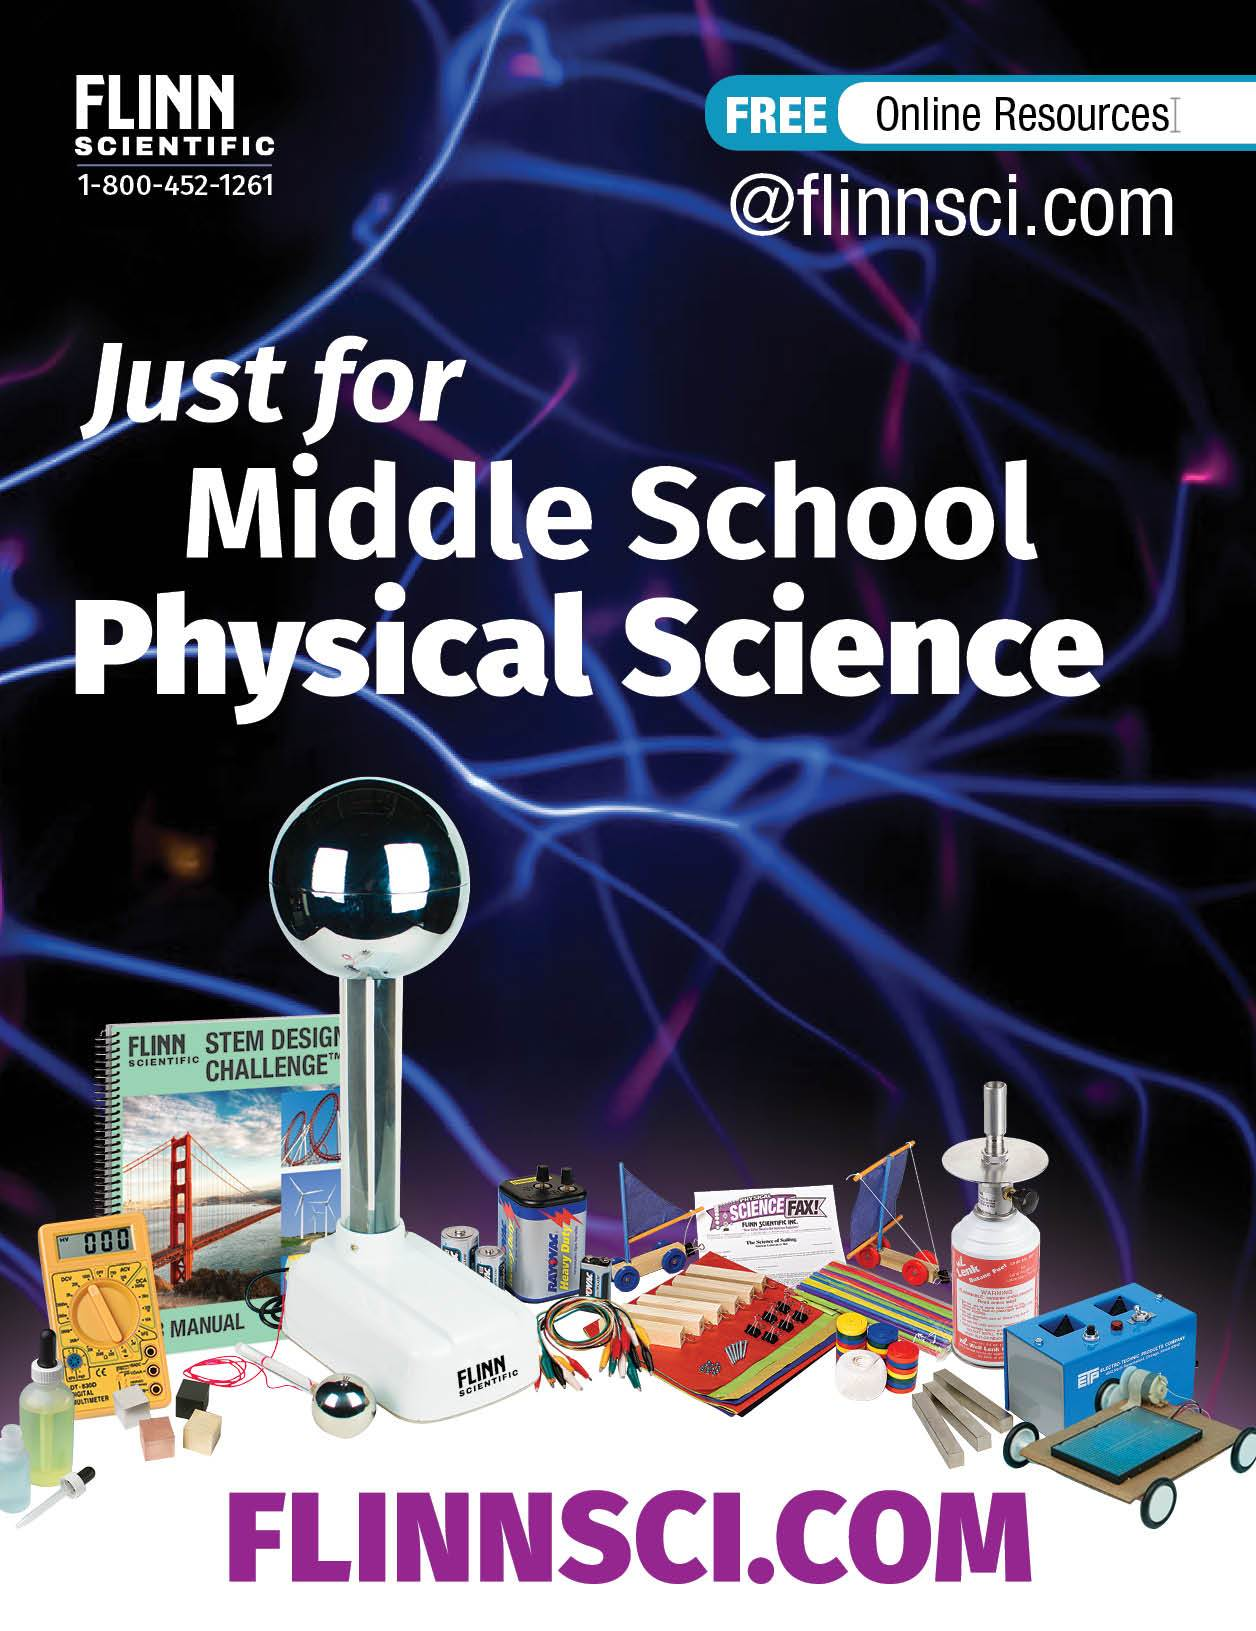 Just for Middle School Physical Science Mini Catalog